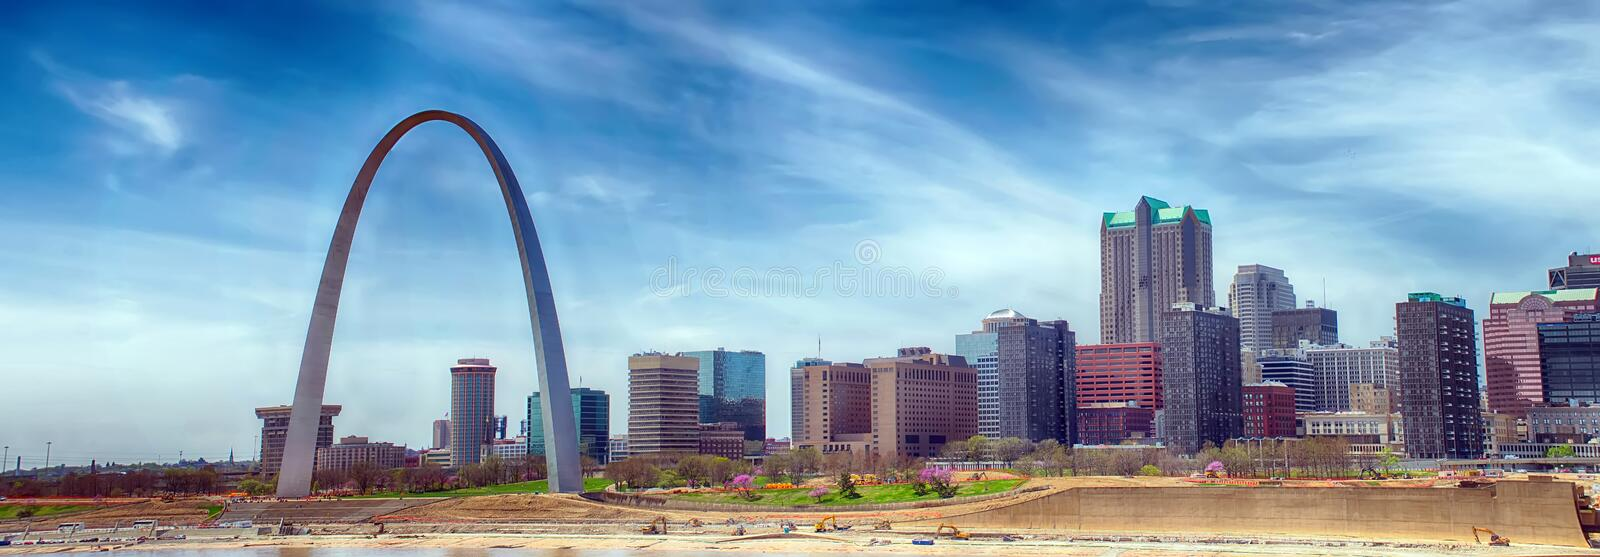 Louis missouri downtown at daylight royalty free stock photography